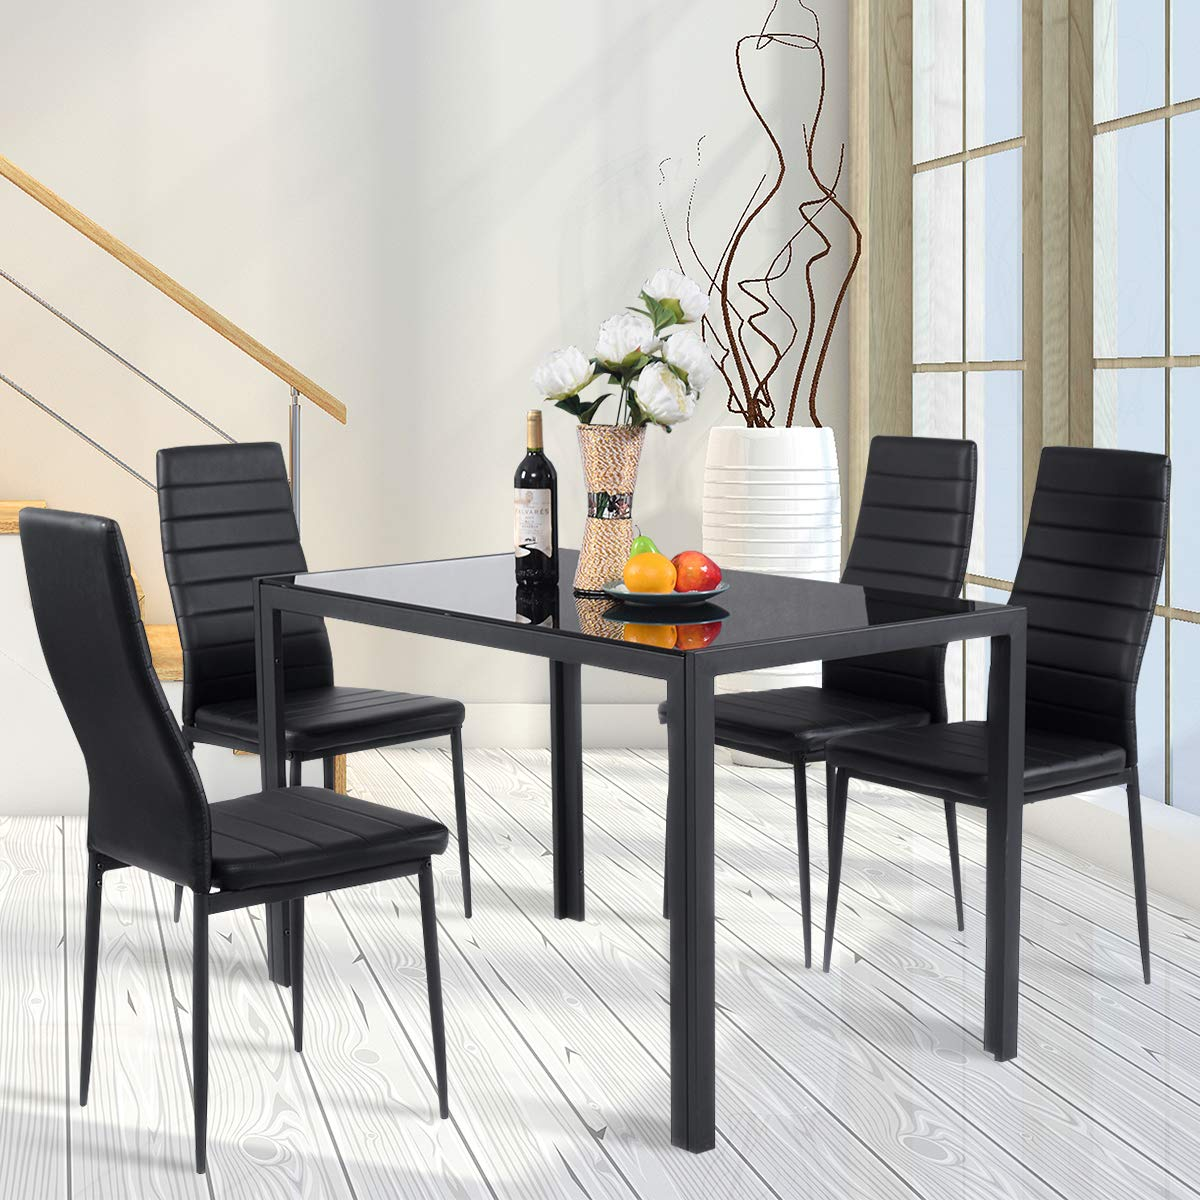 Amazon com giantex 5 piece kitchen dining table set with glass table top leather padded 4 chairs and metal frame table for breakfast dining room kitchen